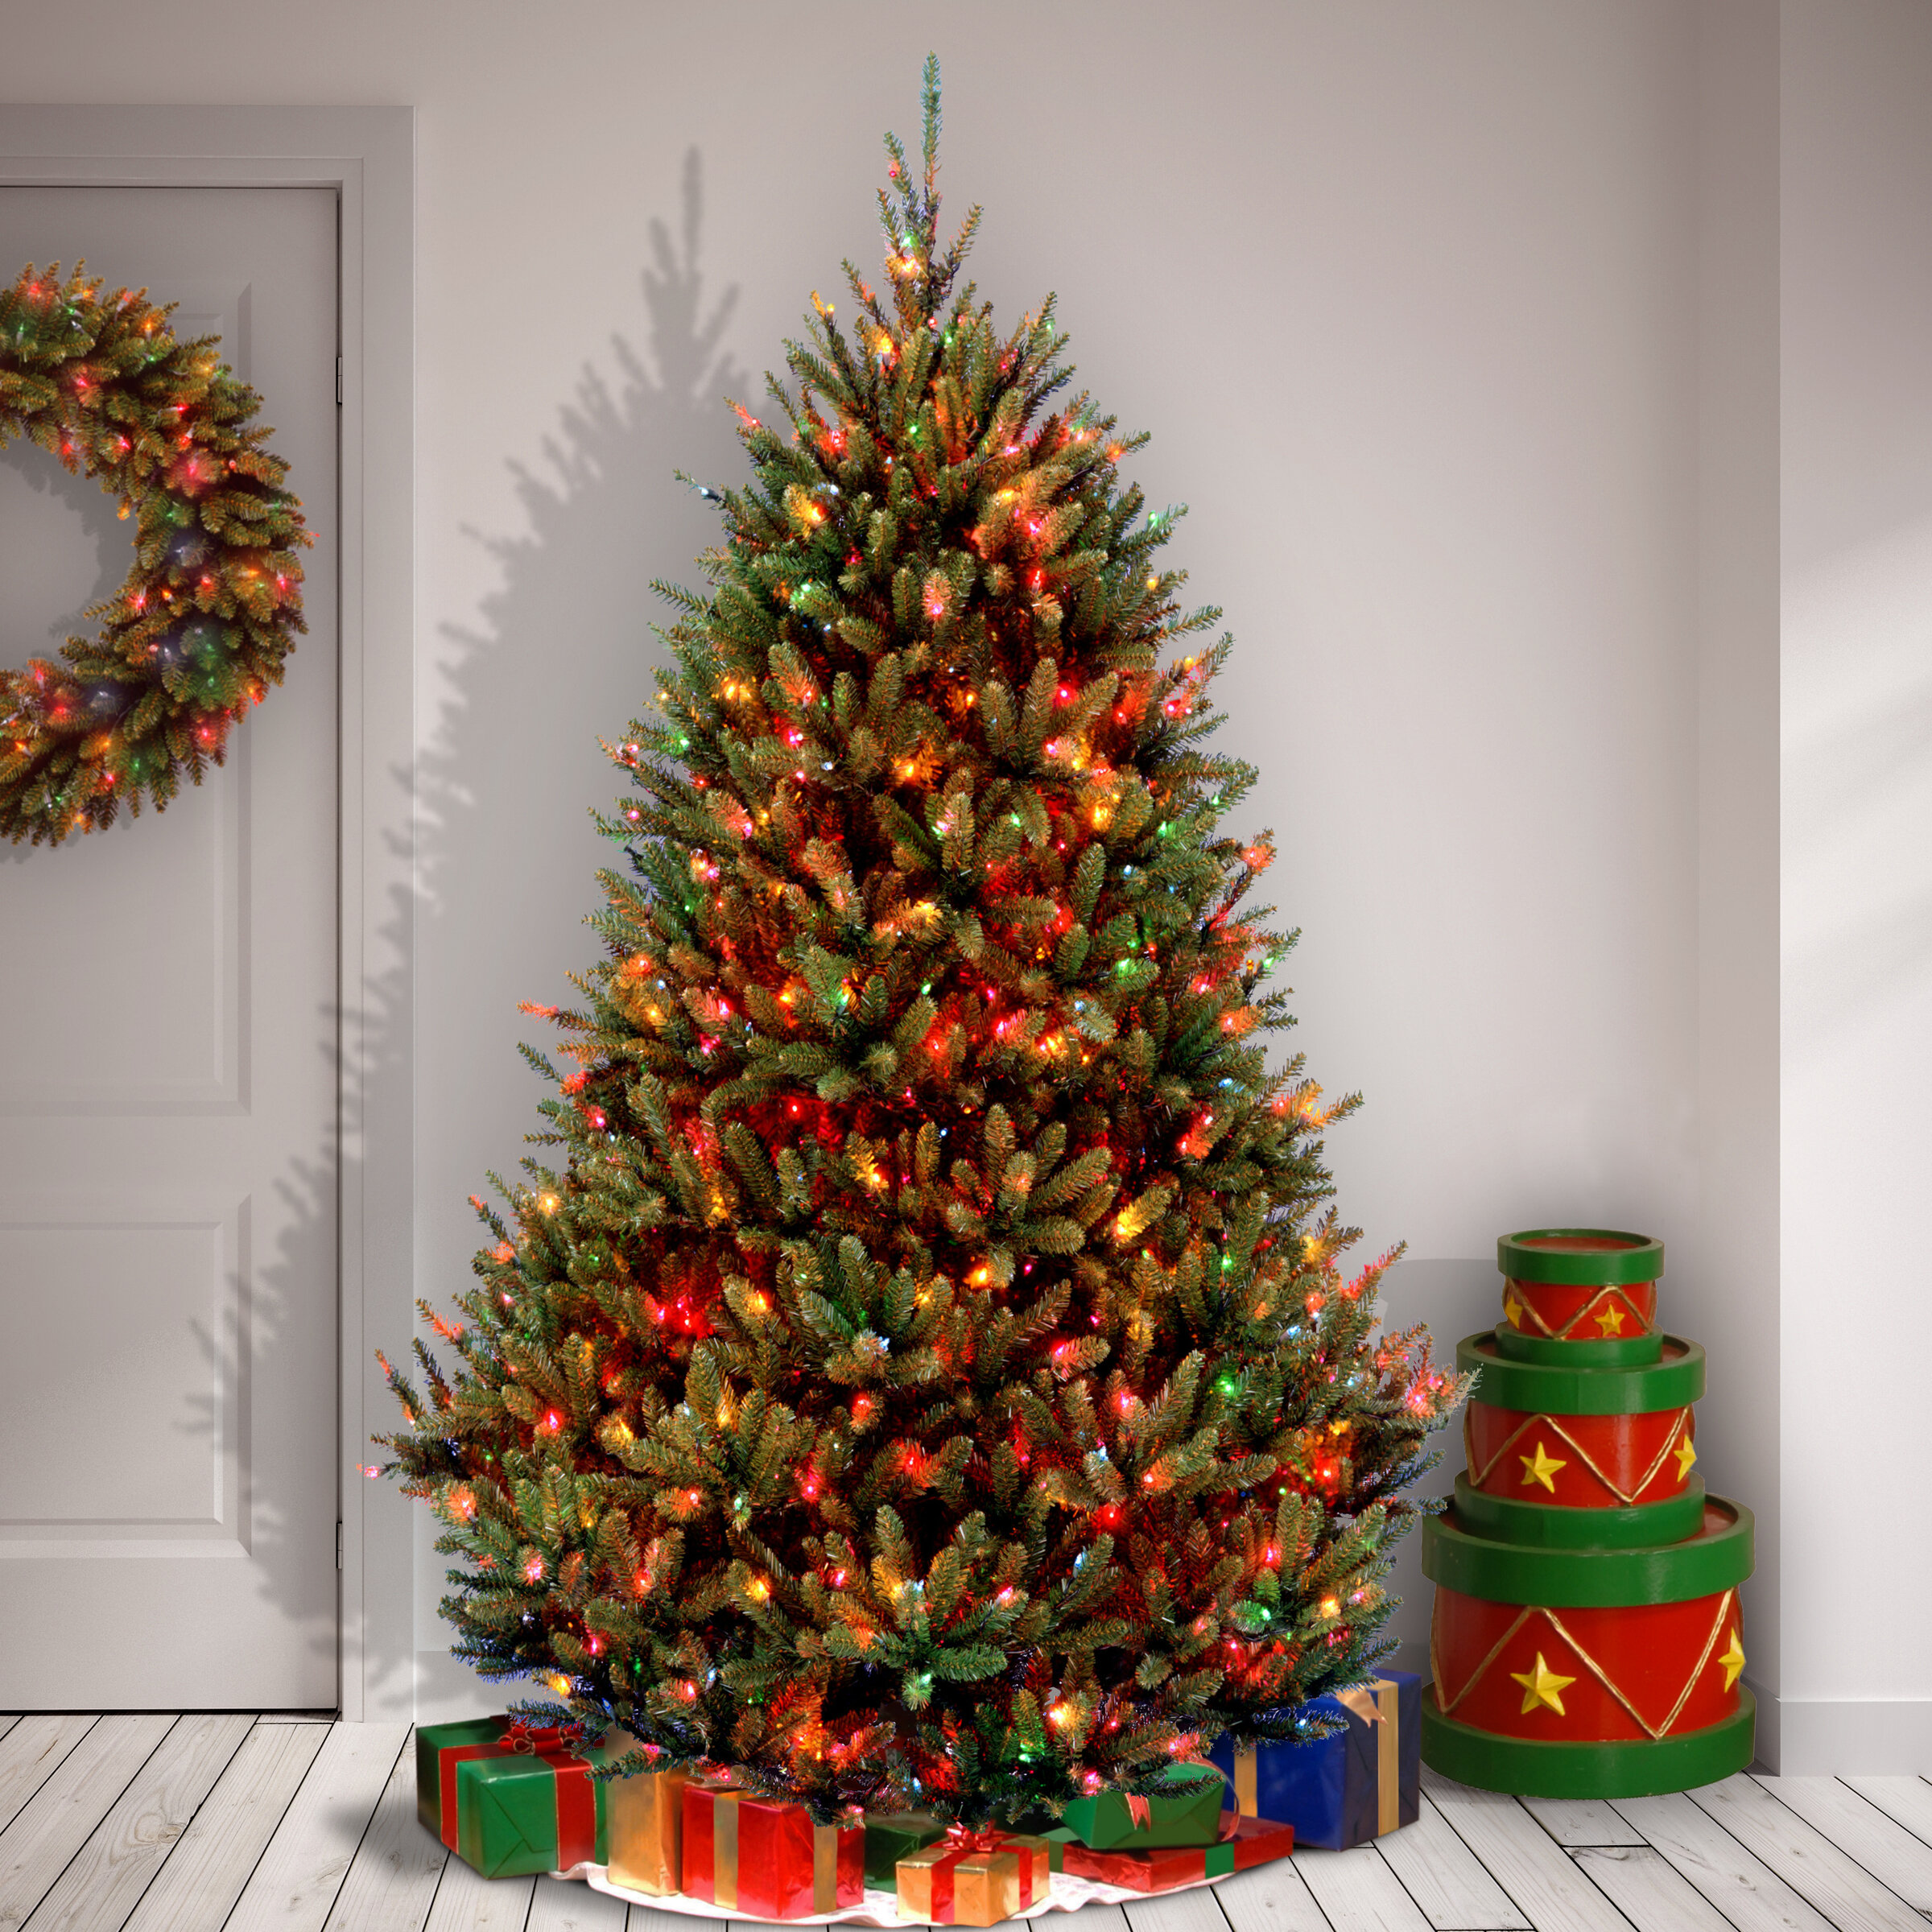 Christmas Tree Made Of Christmas Lights: National Tree Co. Natural Fraser 7.5' Green Fir Artificial